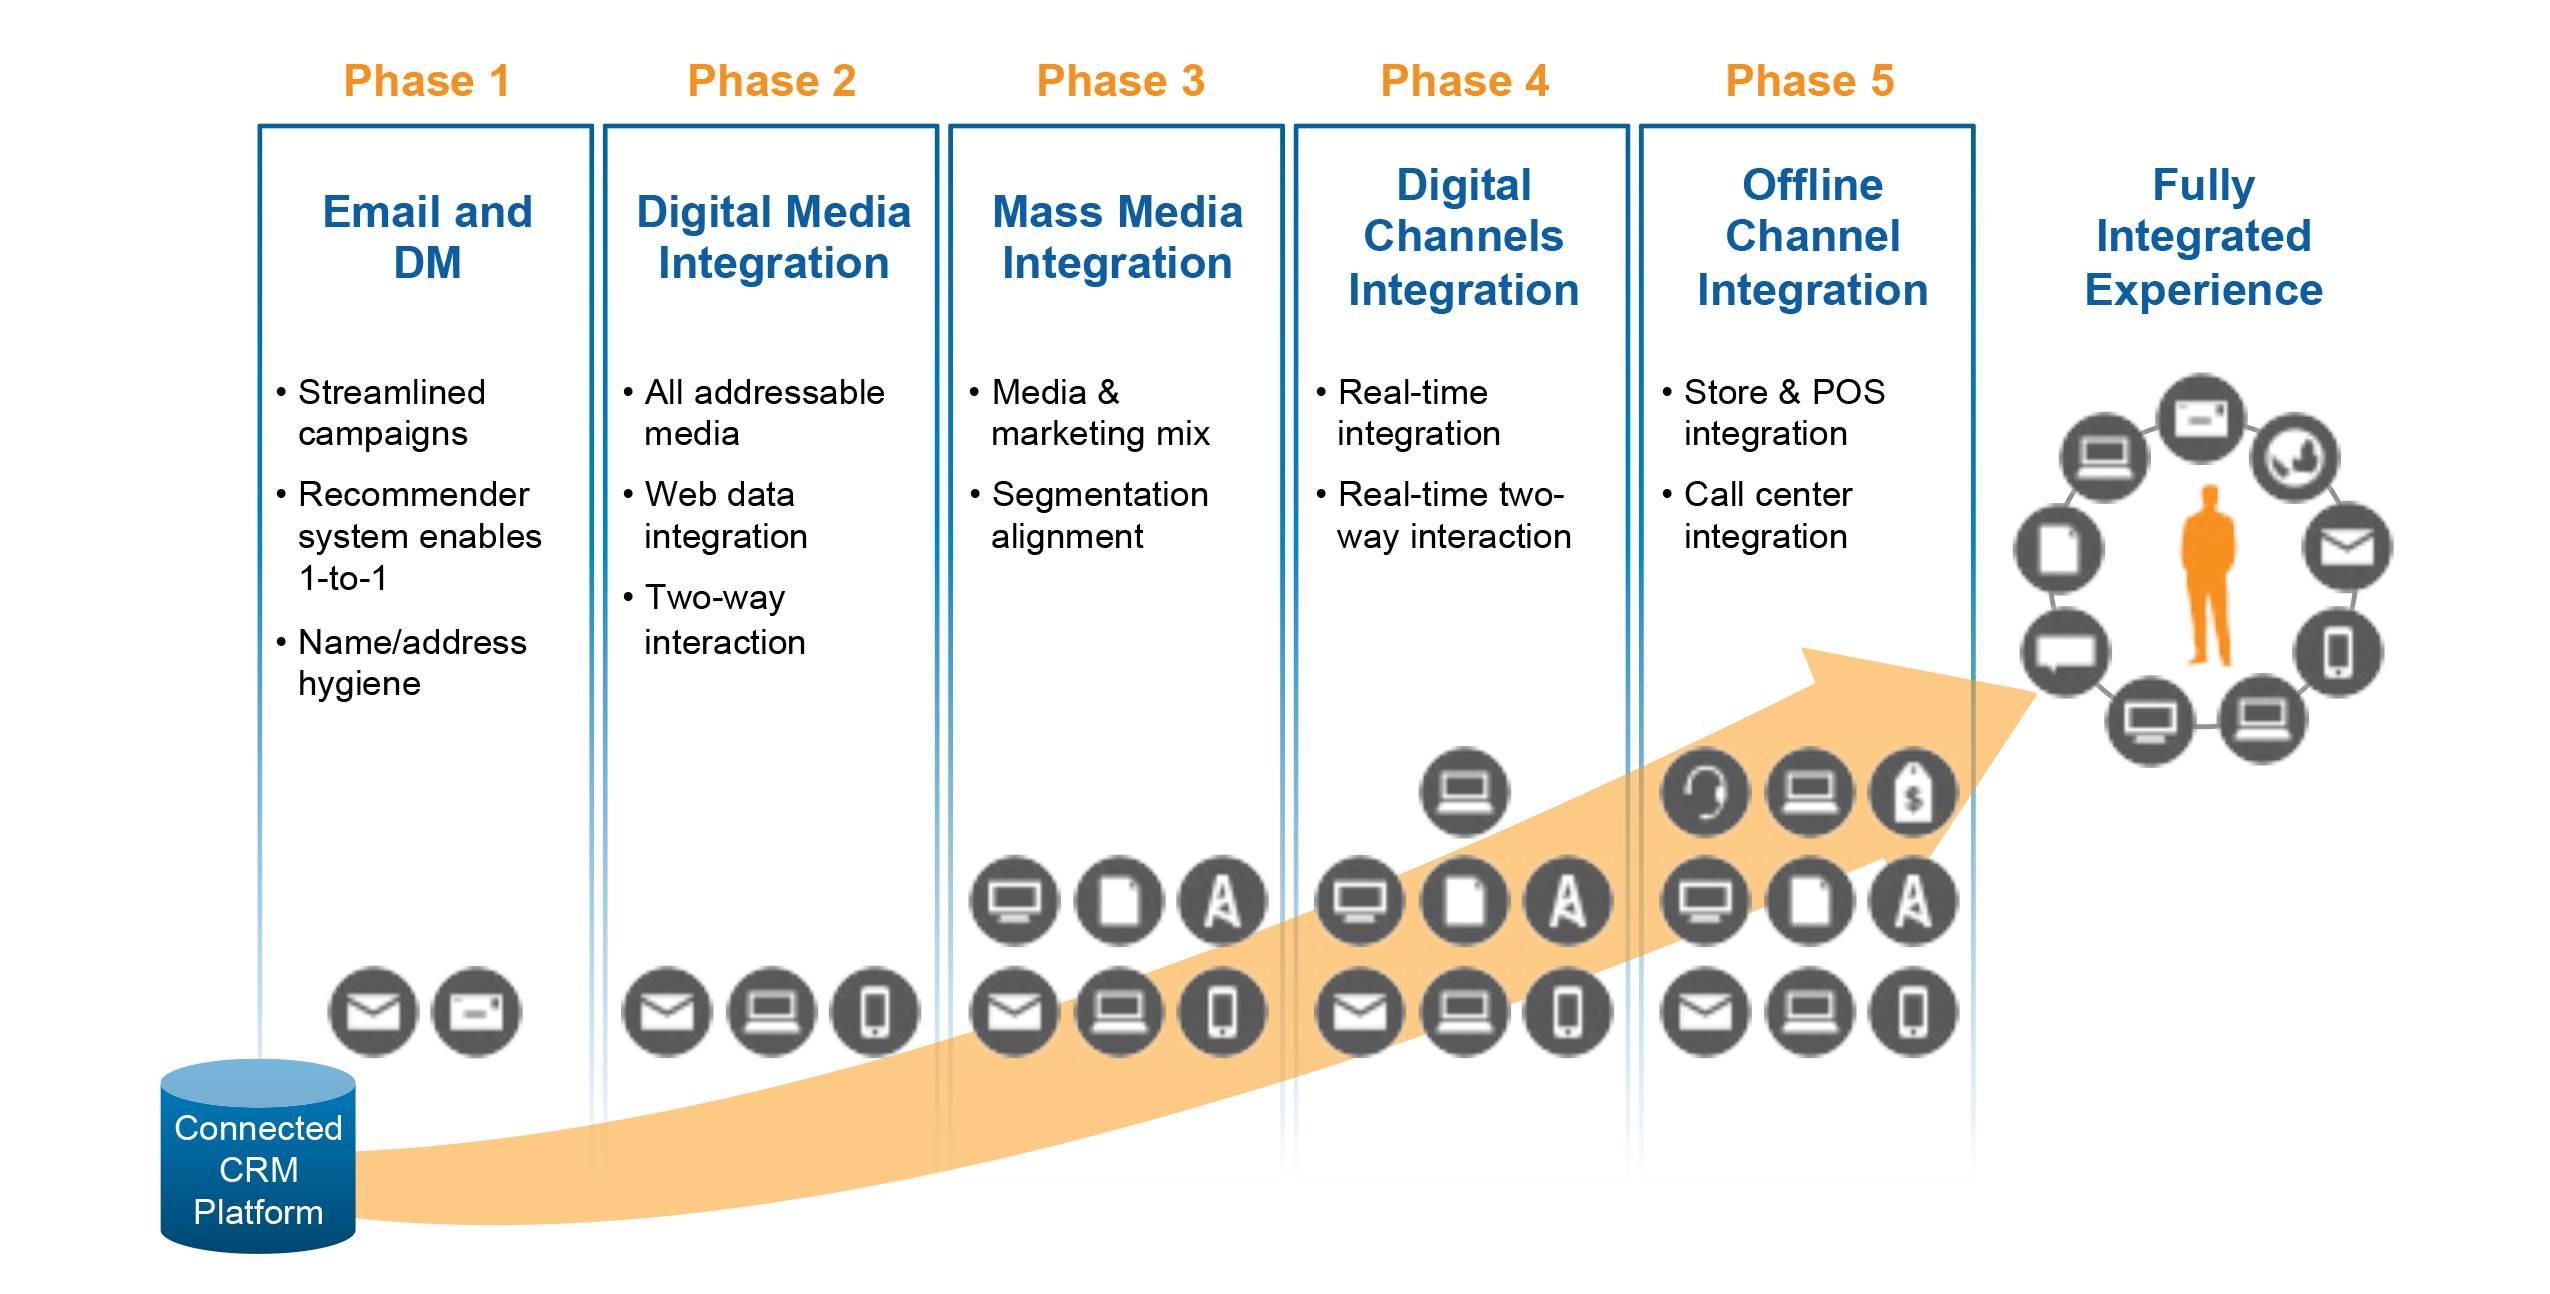 5 phases to fully integrated experience